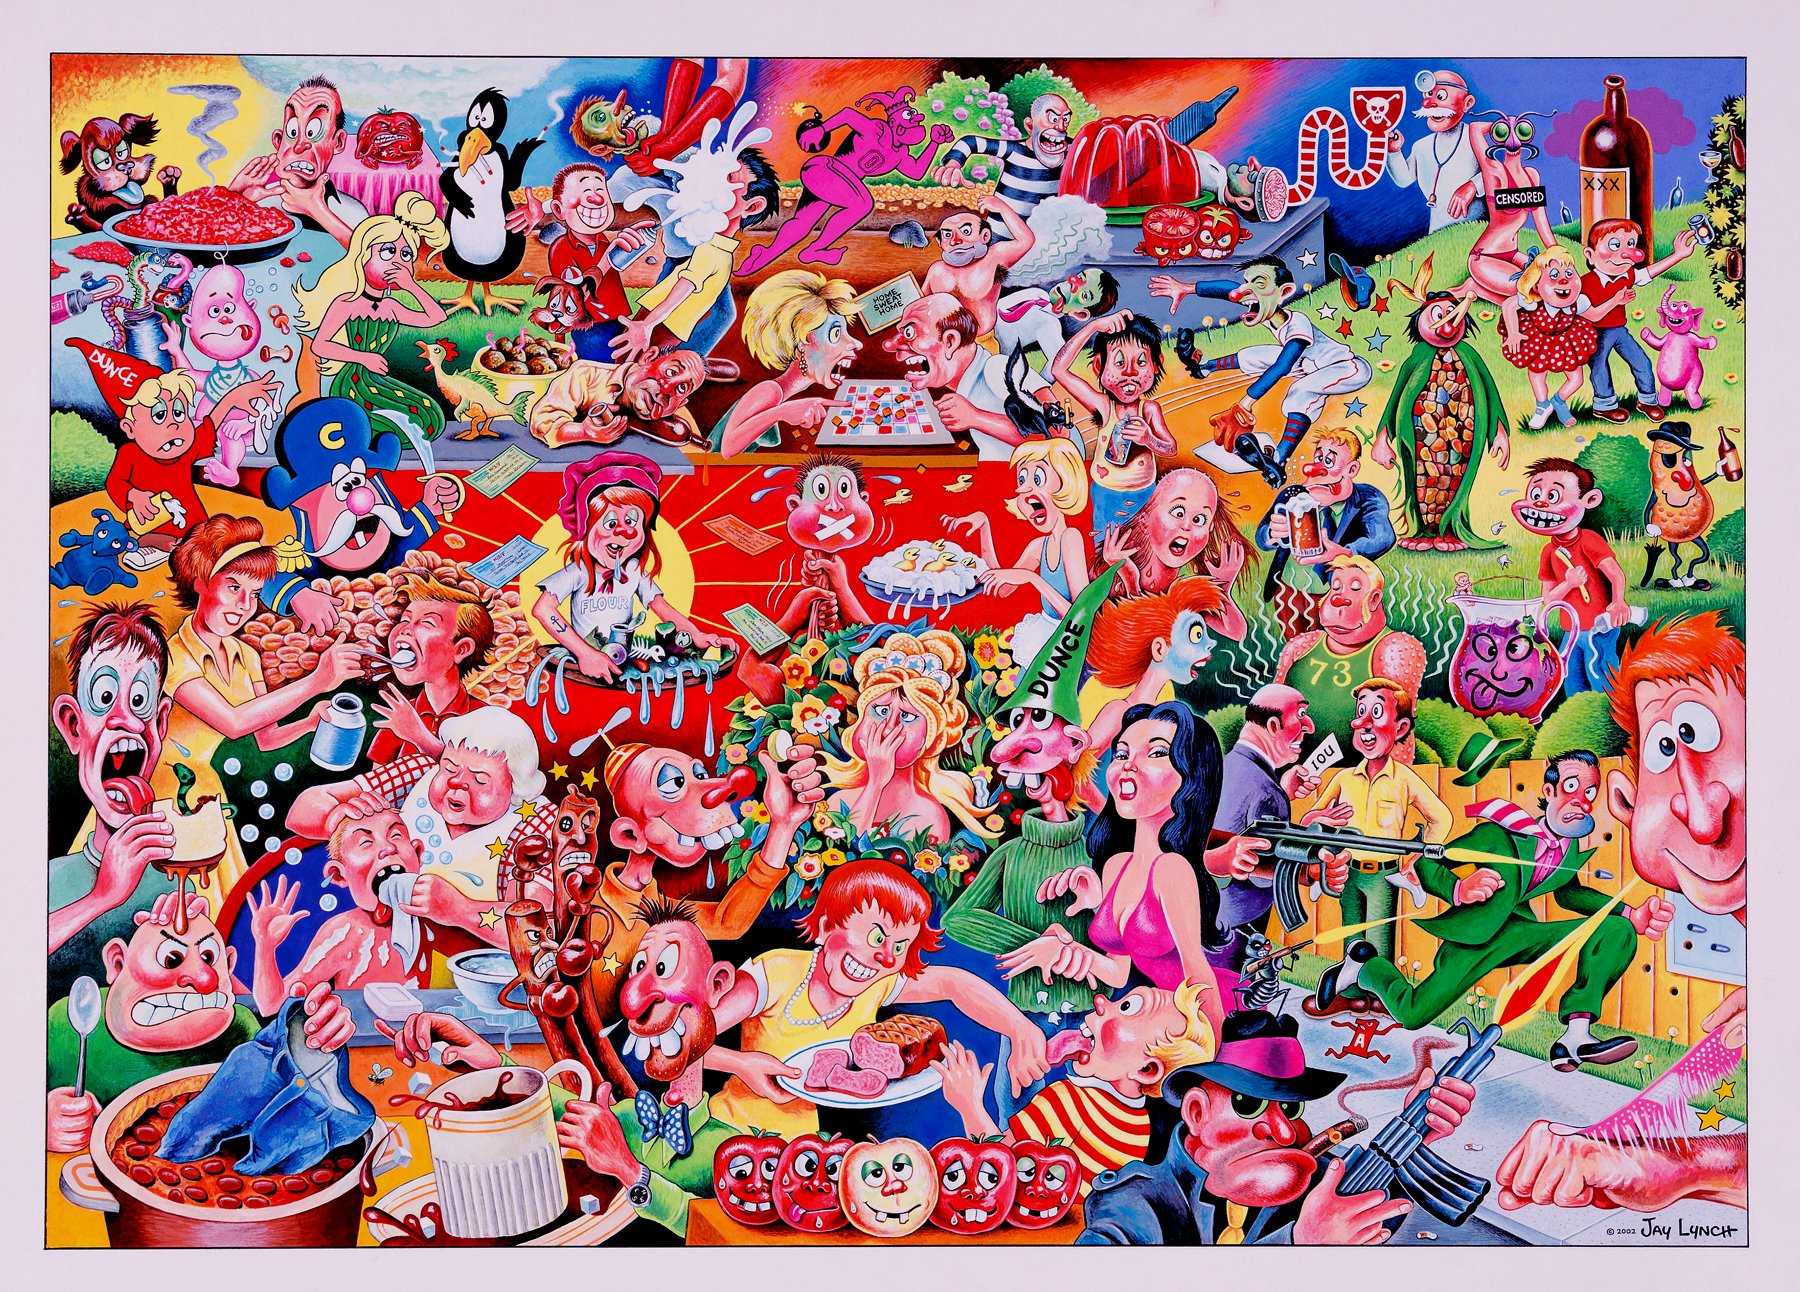 HUGE CLASSIC 'Wacky Packages' Poster Painting With over 50 Classic Products Featured!